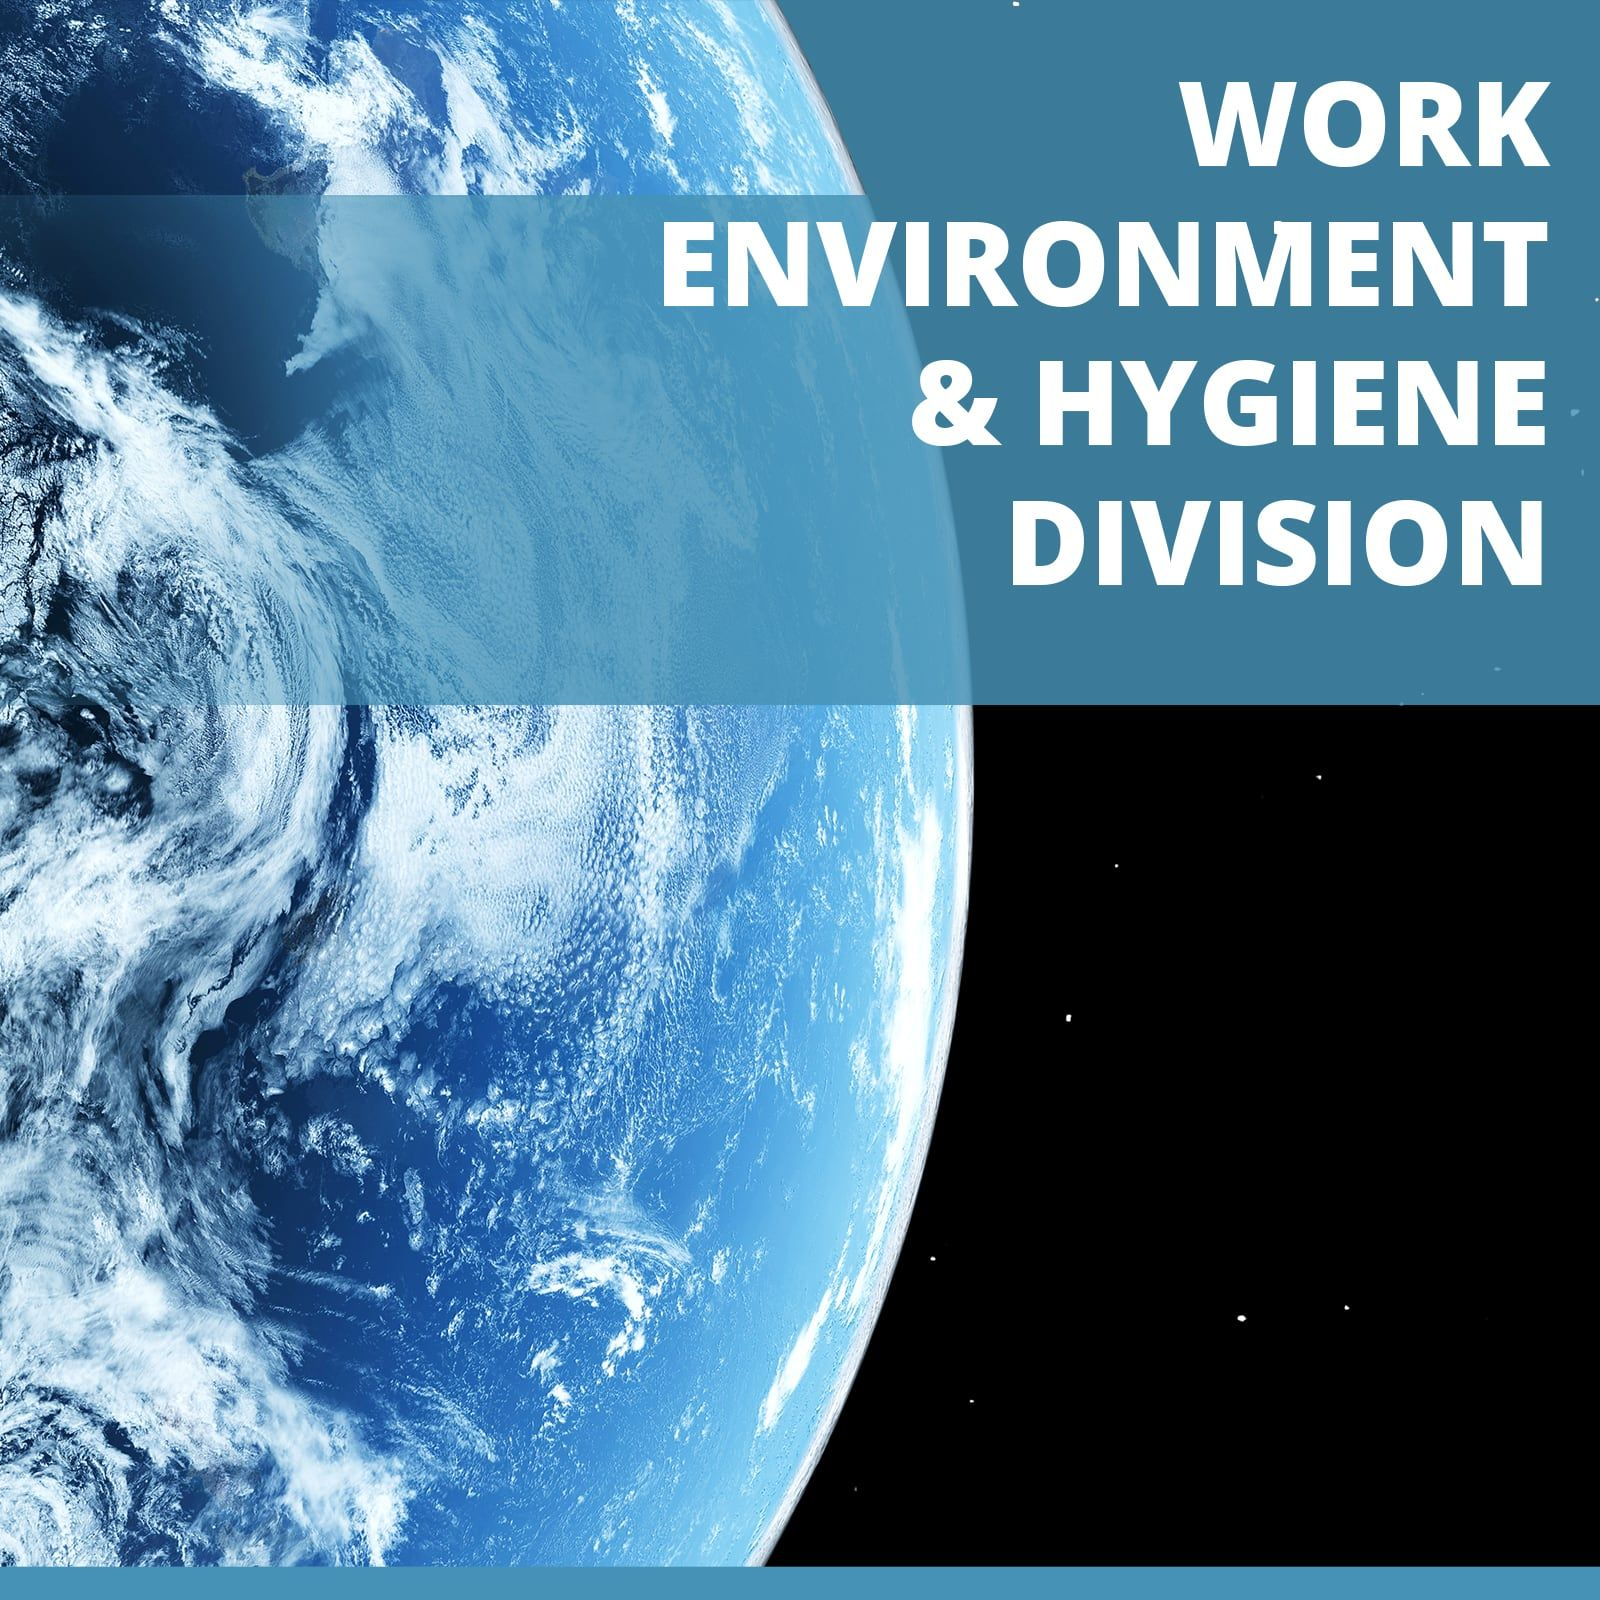 WORK ENVIRONMENT and HYGIENE DIVISION